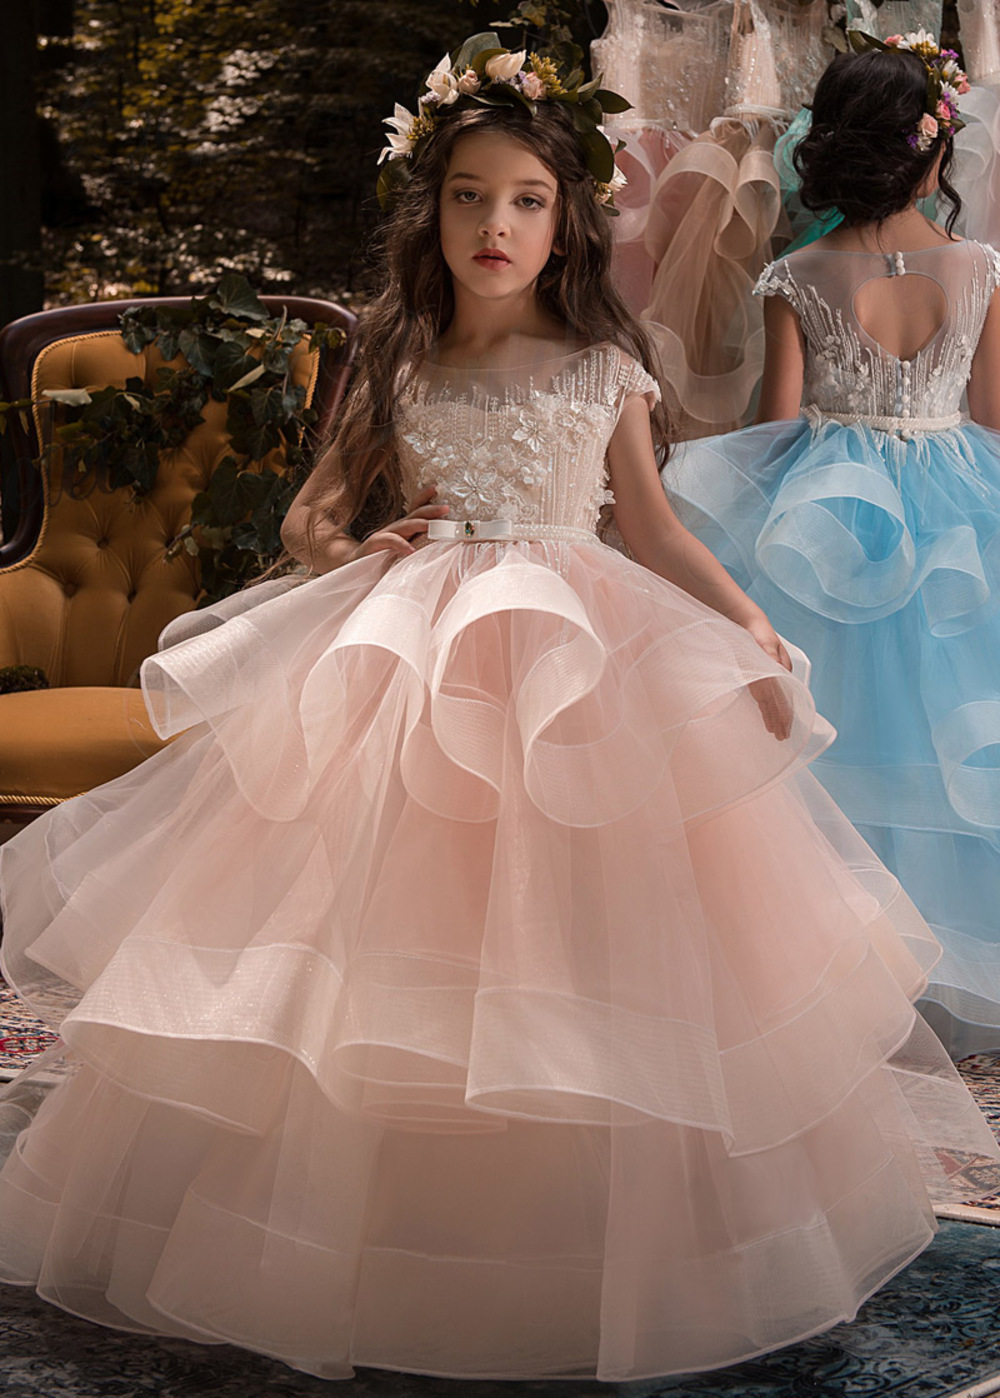 Chic Tulle & Elasticated Net Bateau Neckline Cap Sleeves Ball Gown ...